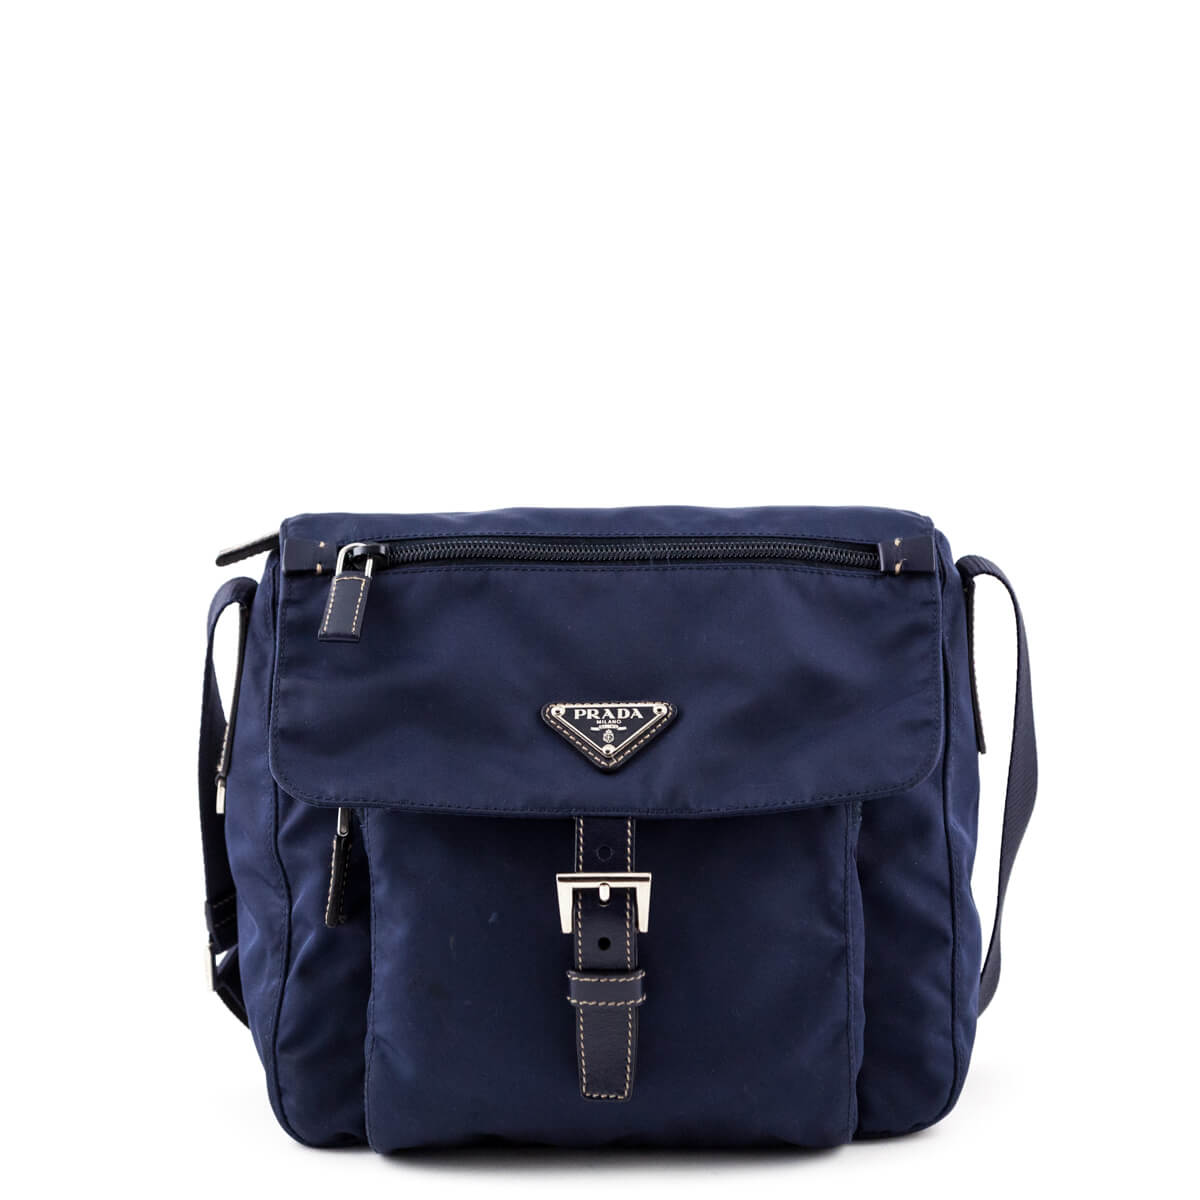 53e354d2cce4 Prada Navy Nylon Small Crossbody Bag - LOVE that BAG - Preowned Authentic  Designer Handbags ...